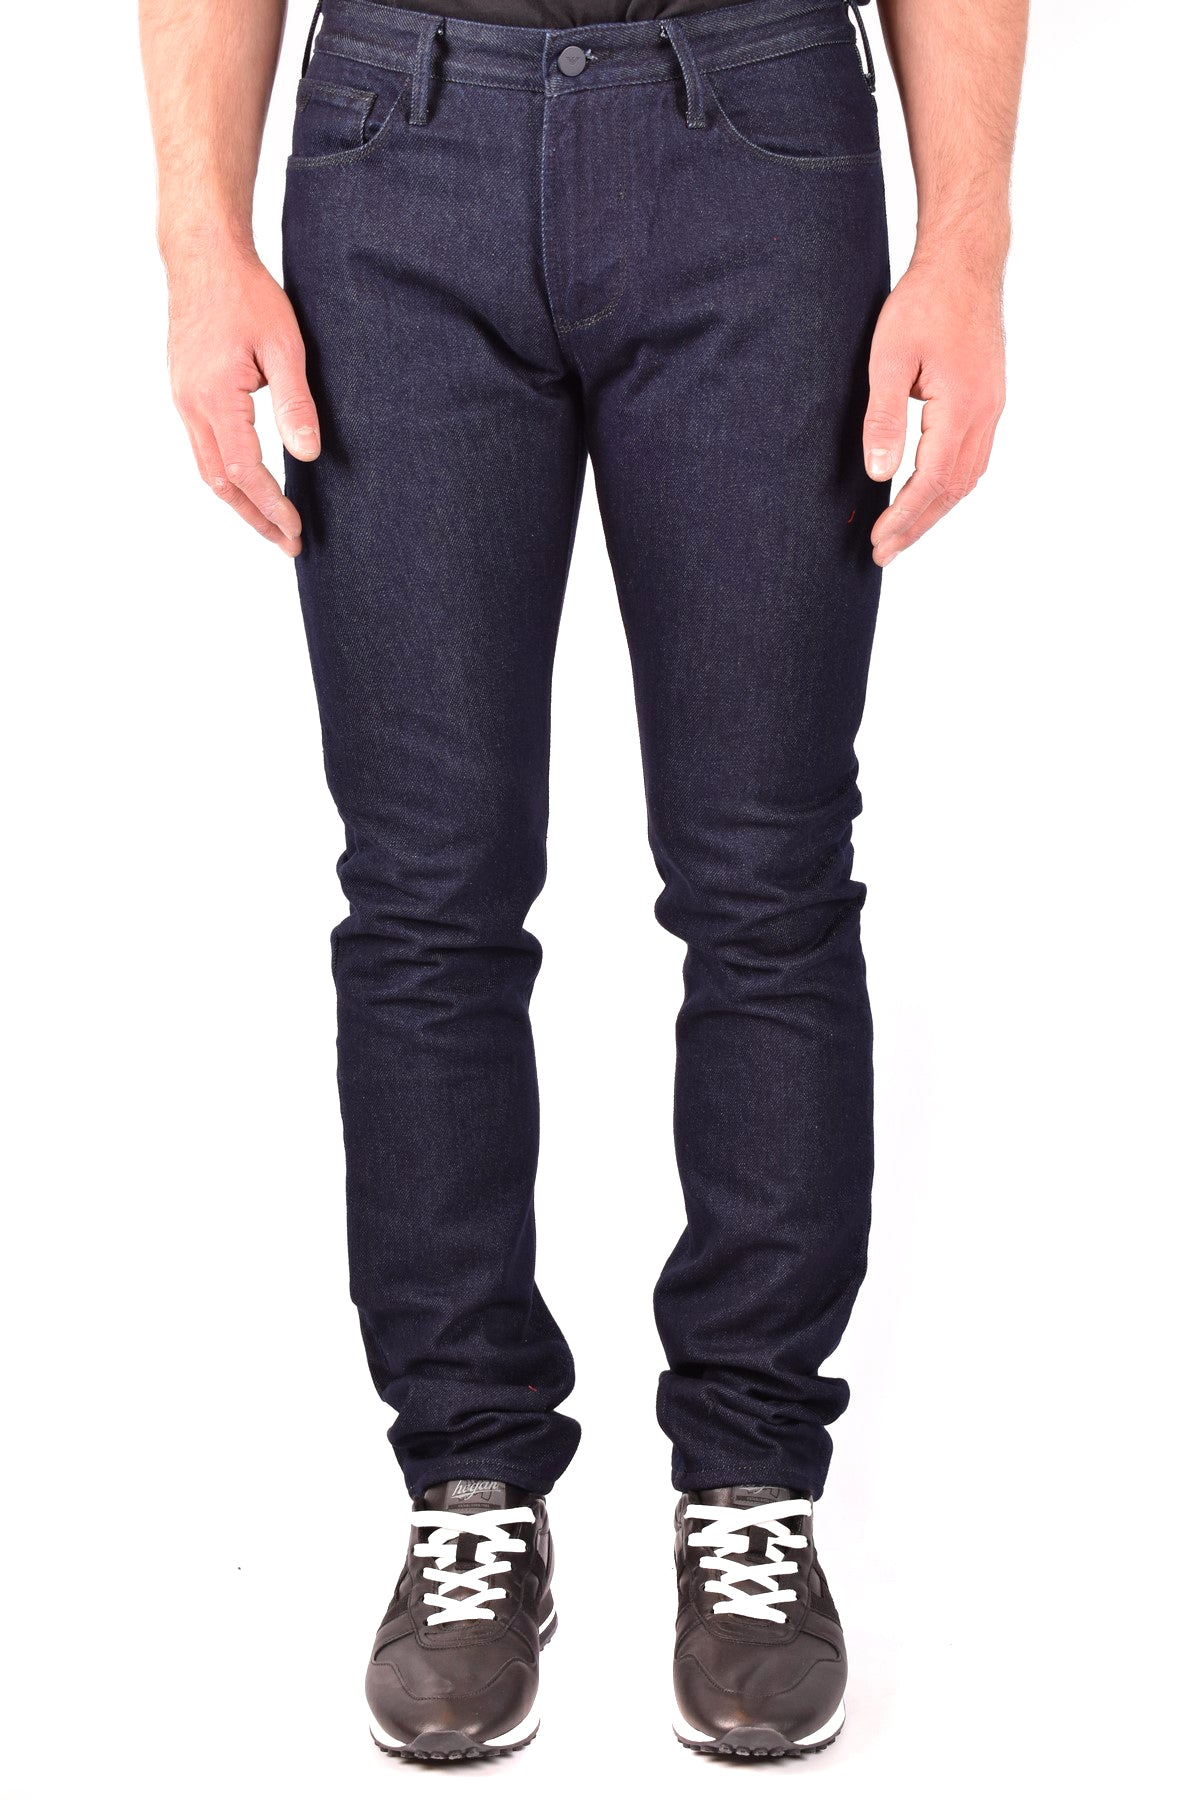 Jeans Emporio Armani-Men's Fashion - Men's Clothing - Jeans-30-Product Details Terms: New With LabelClothing Type: JeansMain Color: BlueSeason: Fall / WinterMade In: BulgariaGender: ManSize: UsComposition: Cotton 100%Year: 2019Manufacturer Part Number: 3H1J06 1D8Sz 0941-Keyomi-Sook